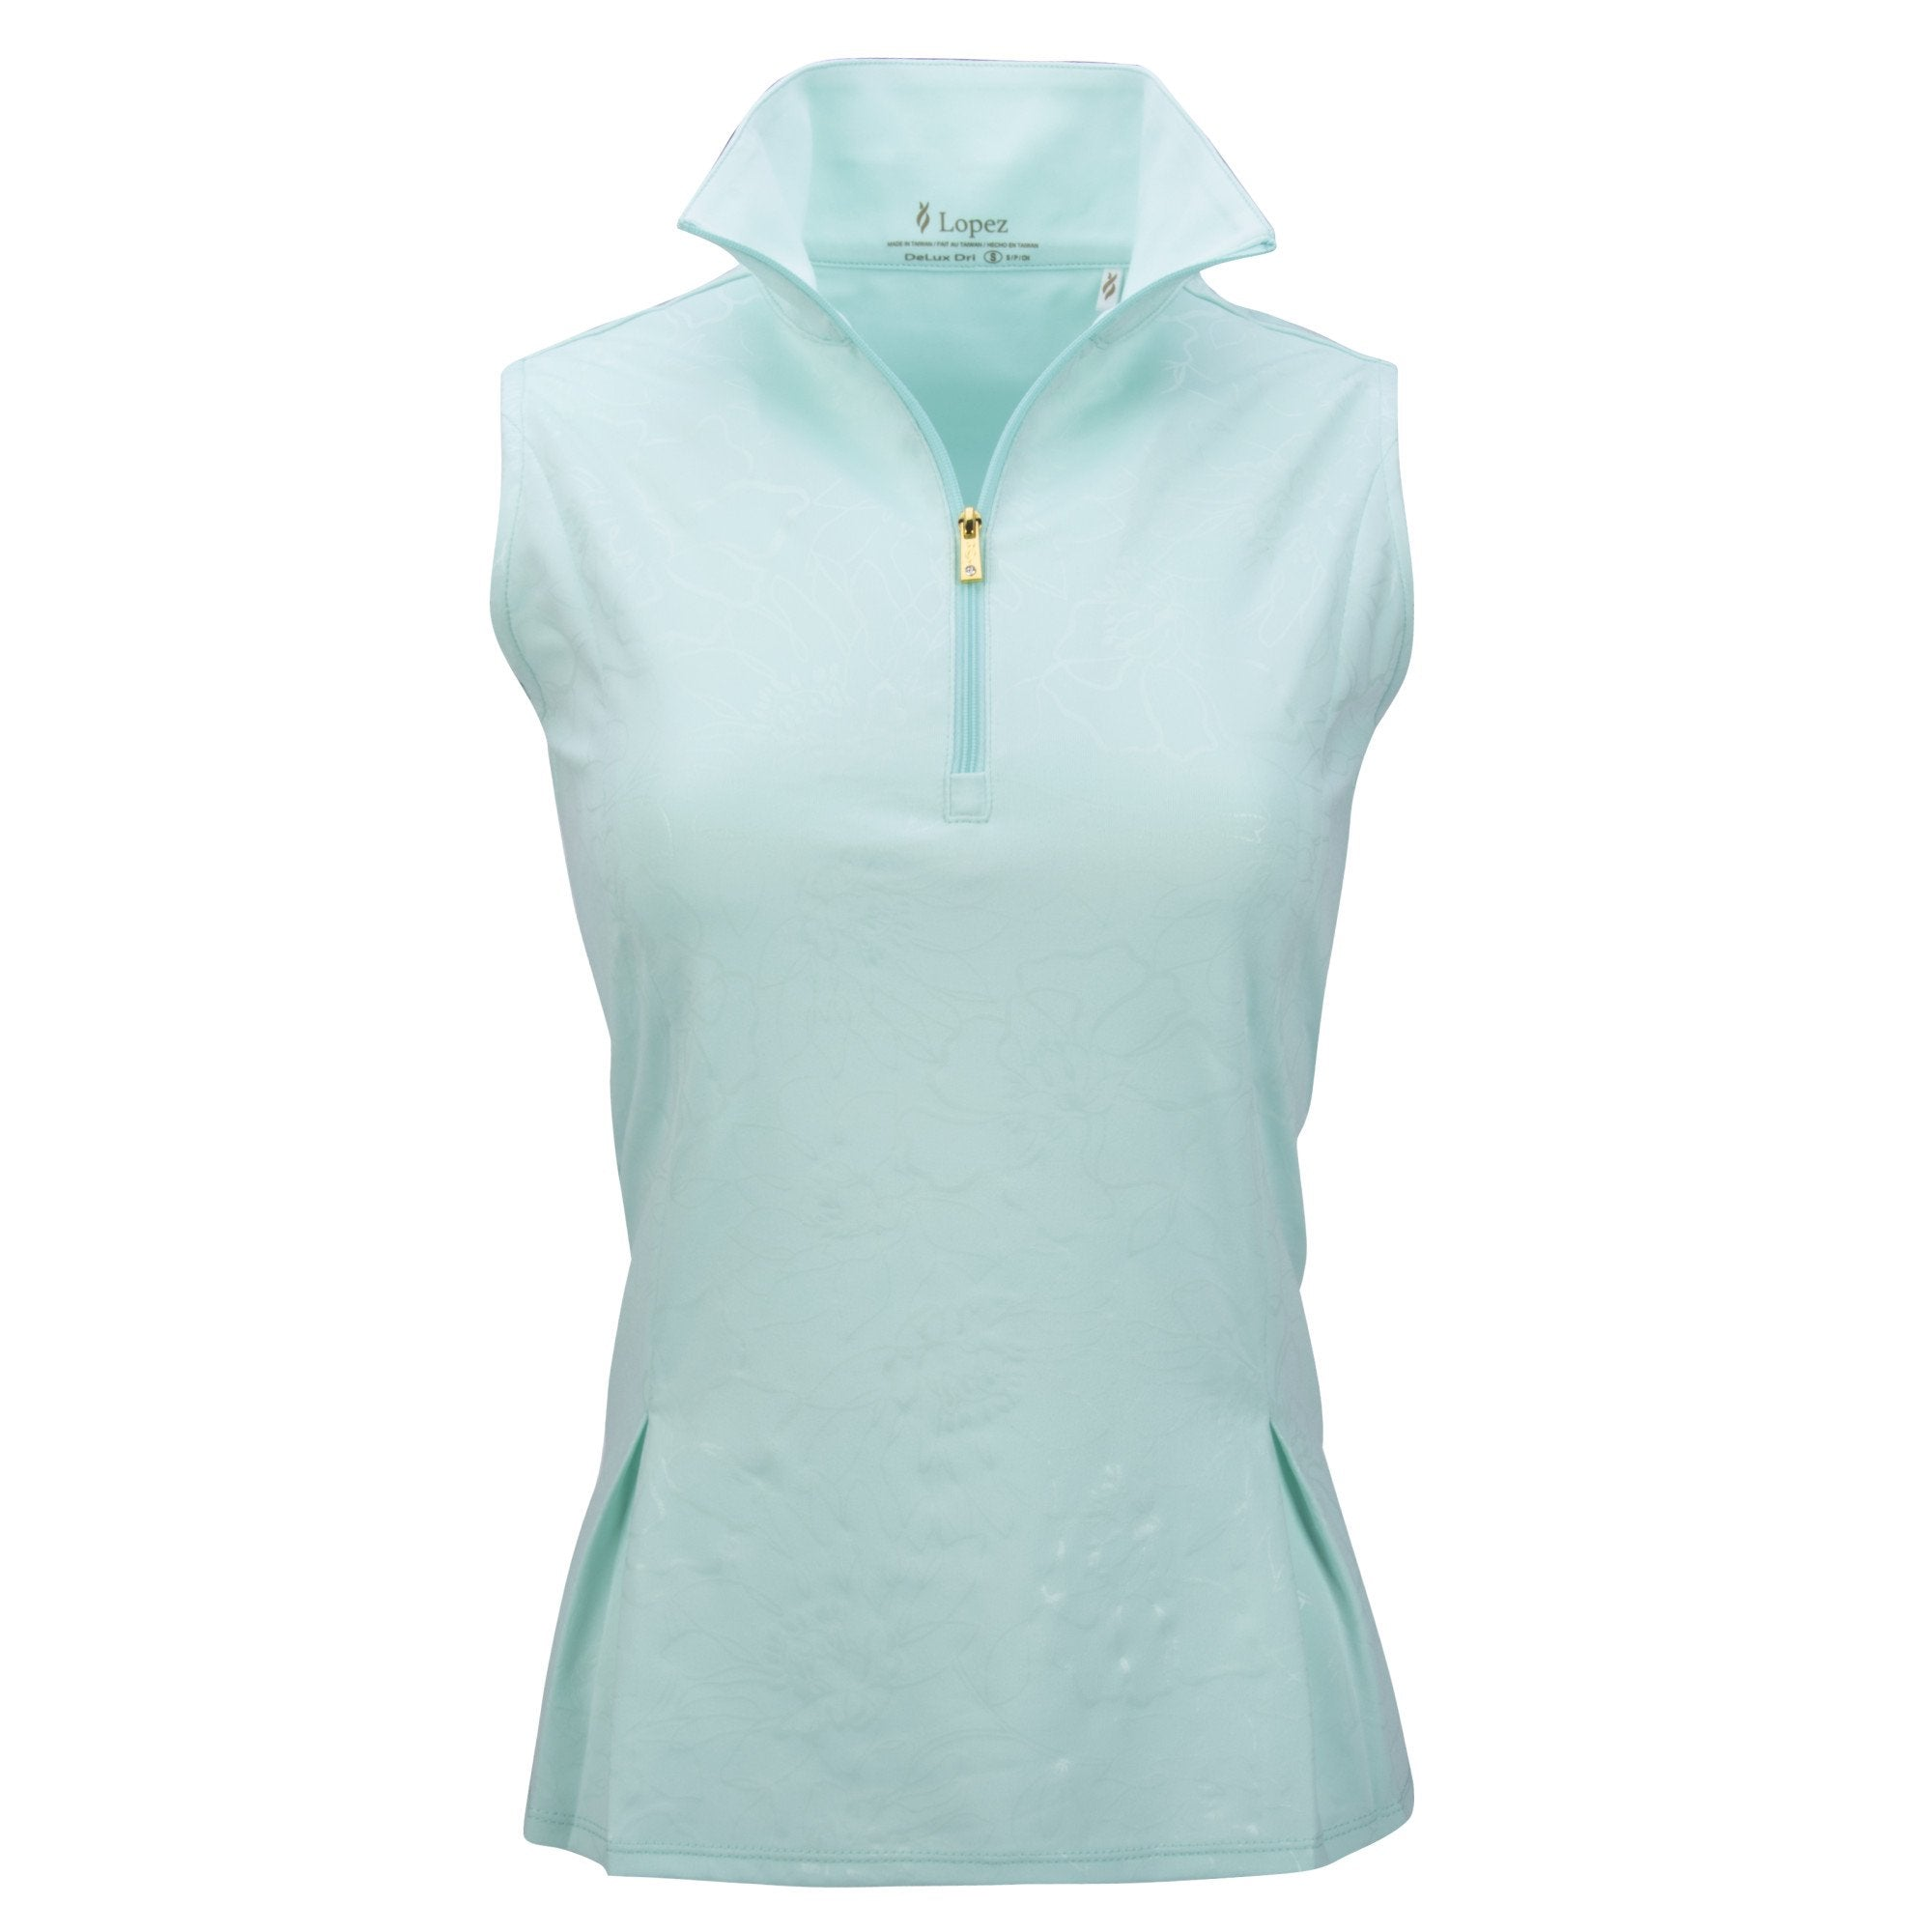 Nancy Lopez Shine Sleeveless Polo Plus Mist